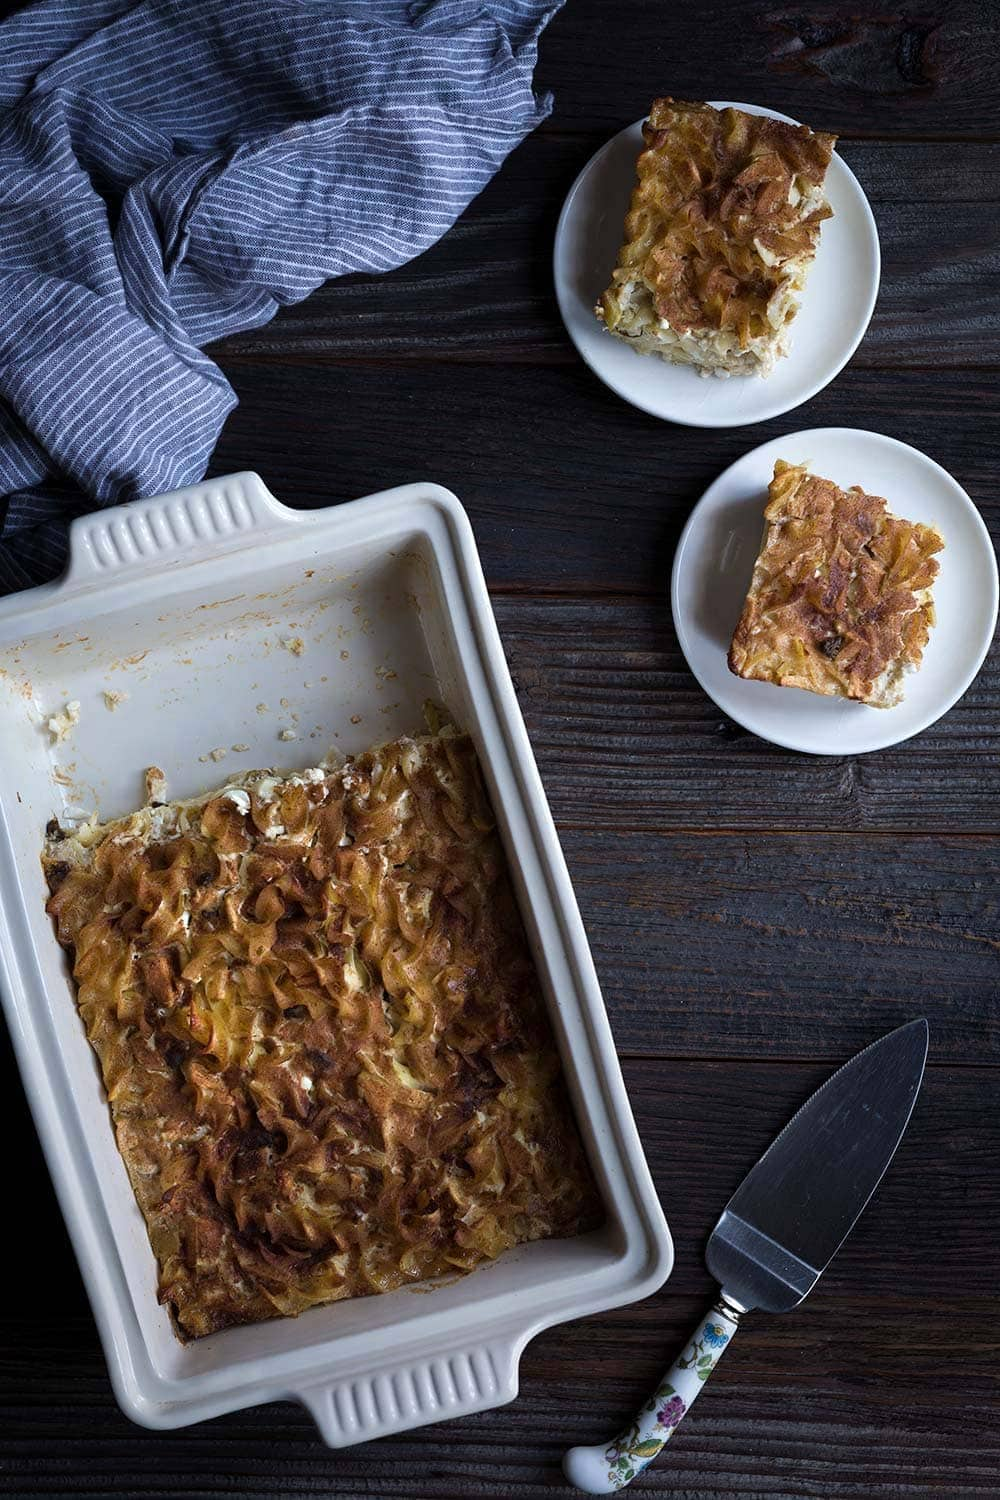 This sweet Noodle Kugel with apples is perfect for celebrating Jewish holidays including Chanukah and Passover! Sour cream, cottage cheese, and a cinnamon-sugar topping help make this a perfect comfort food dish.